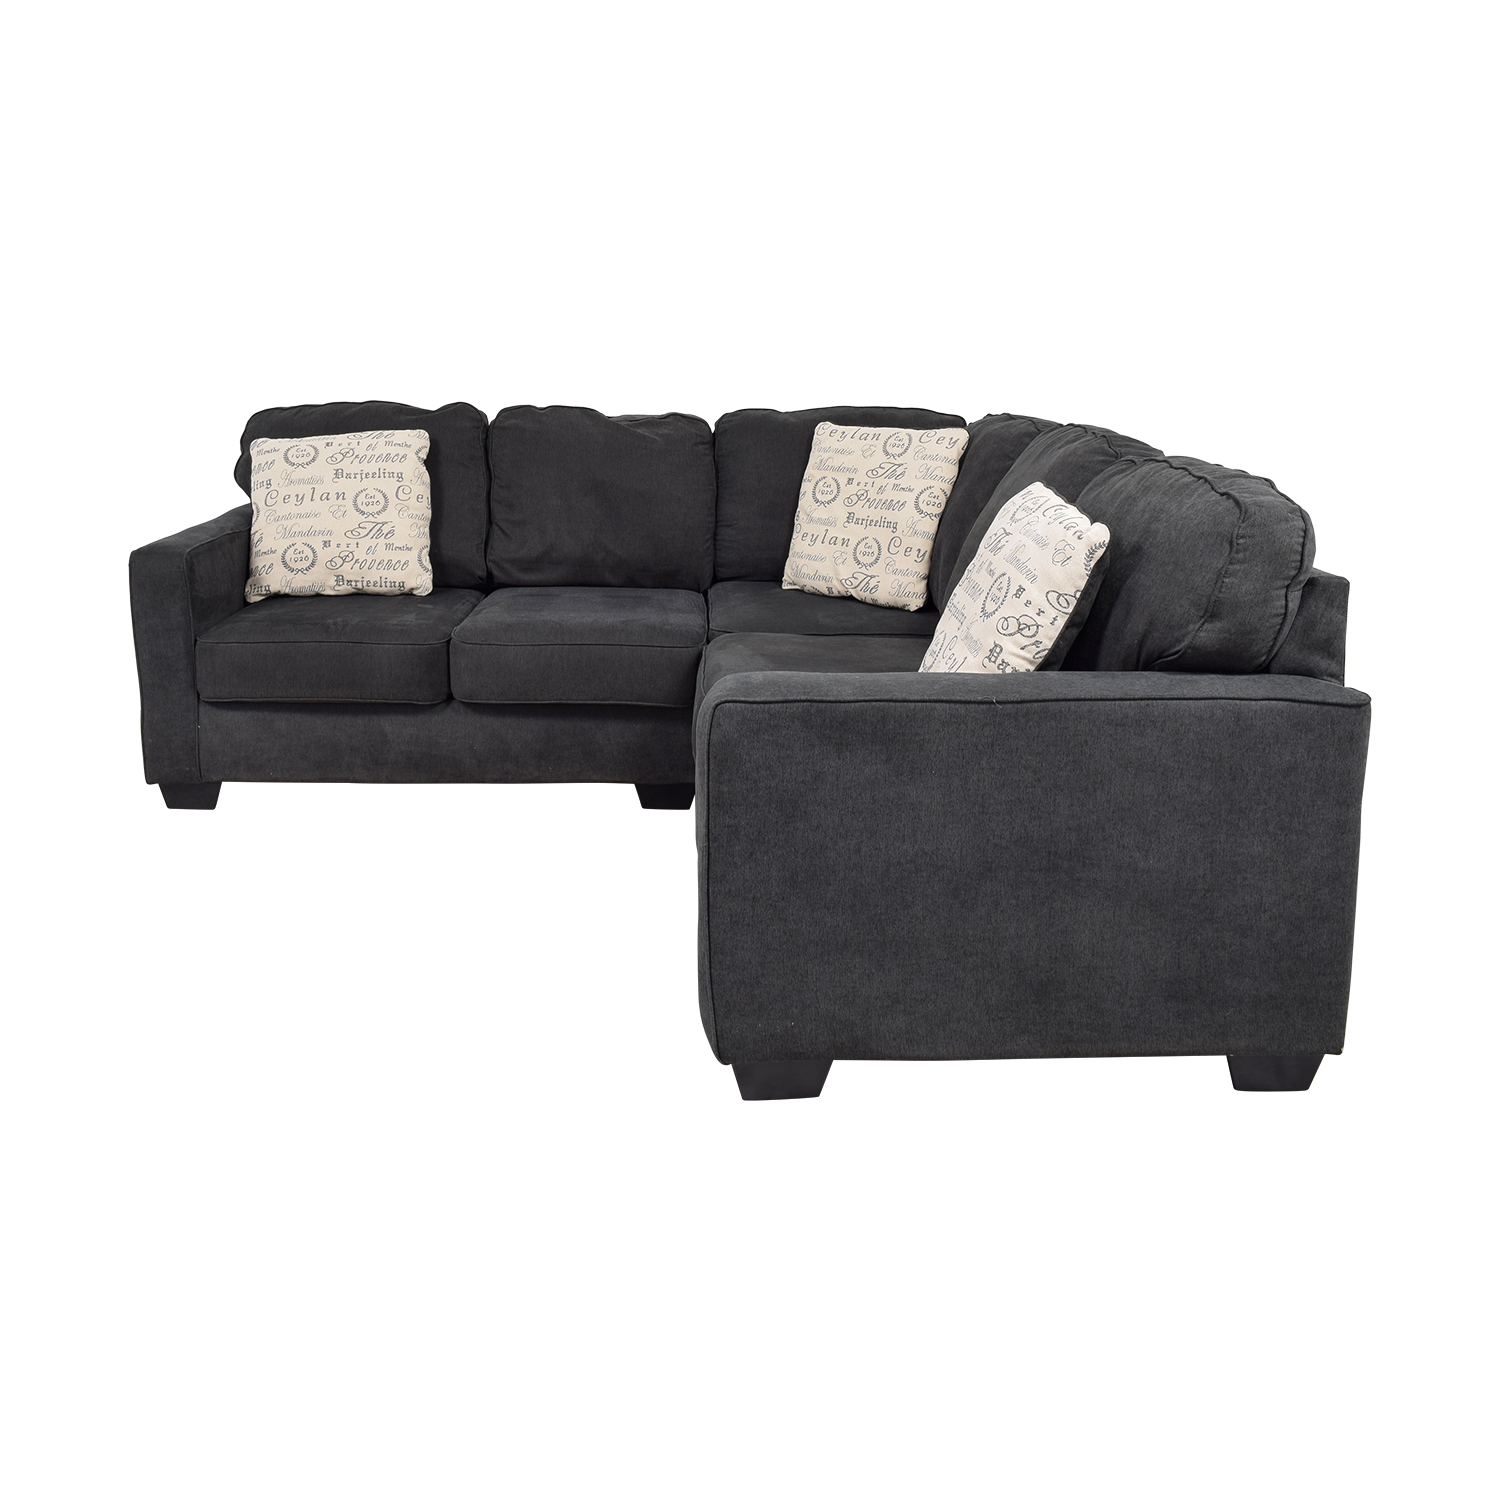 Ashley Furniture Ashley Furniture Alenya Black L-Shaped Sectional on sale